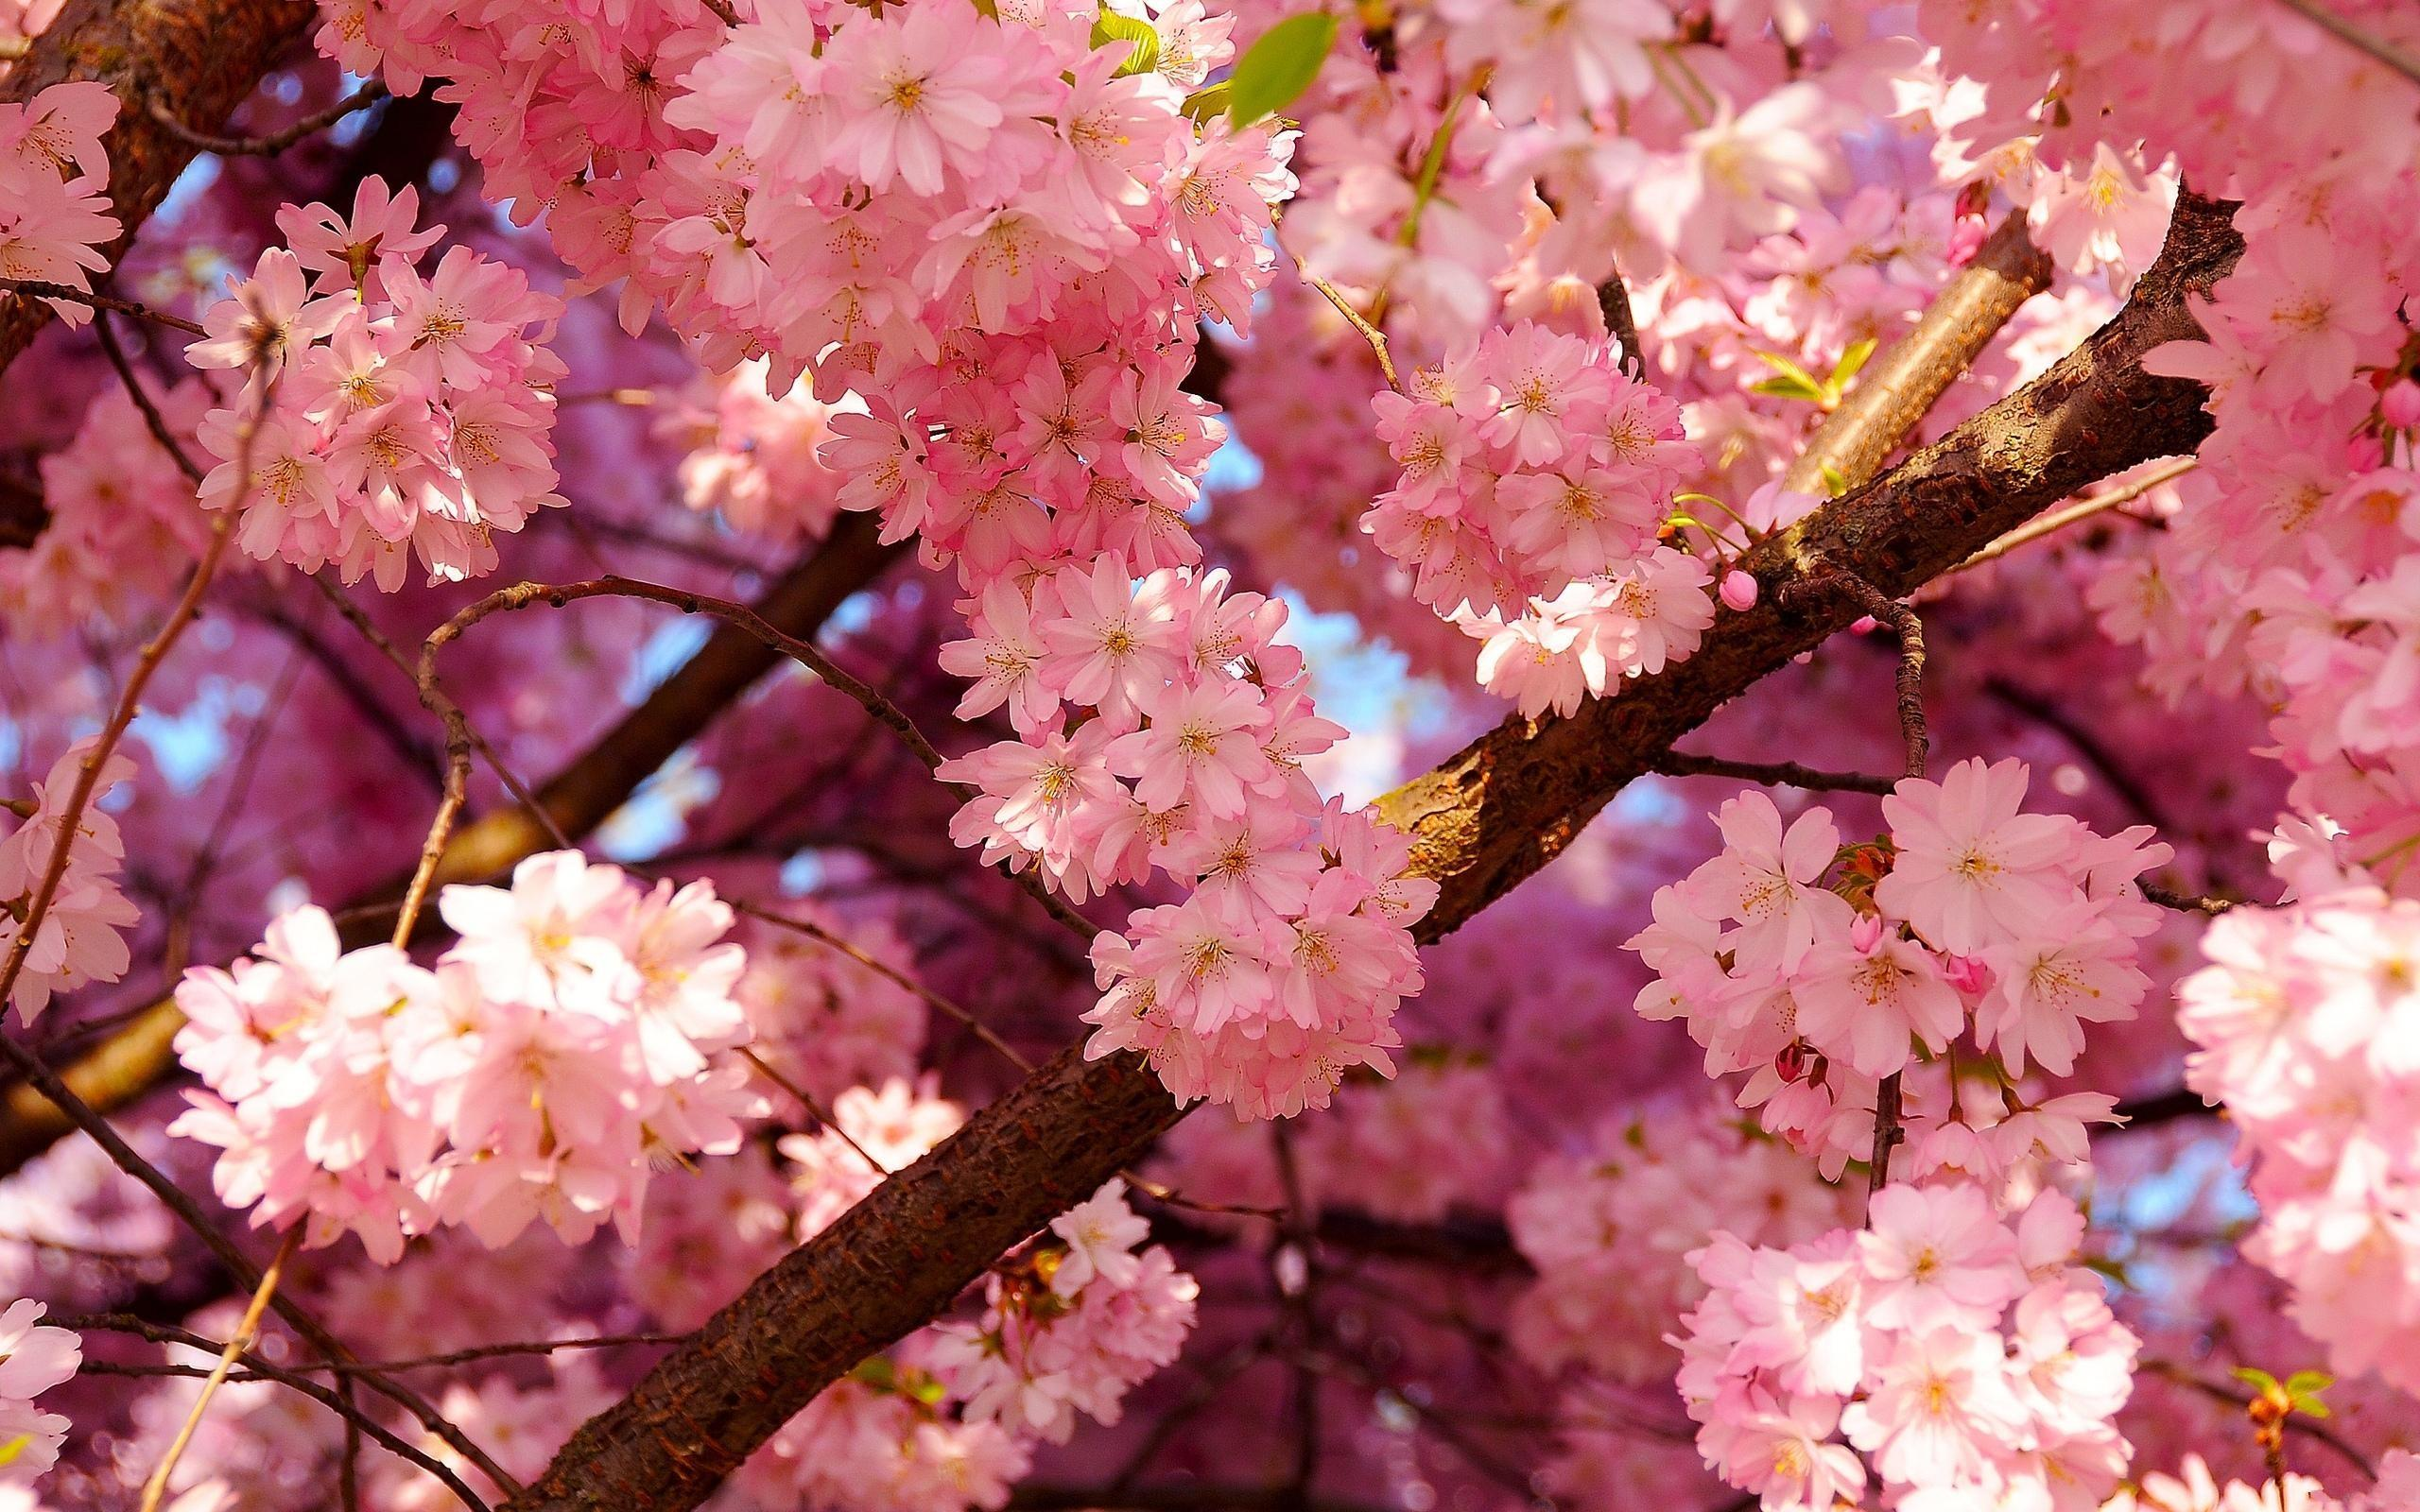 Hd Cherry Blossom Wallpapers Hd Desktop Wallpapers